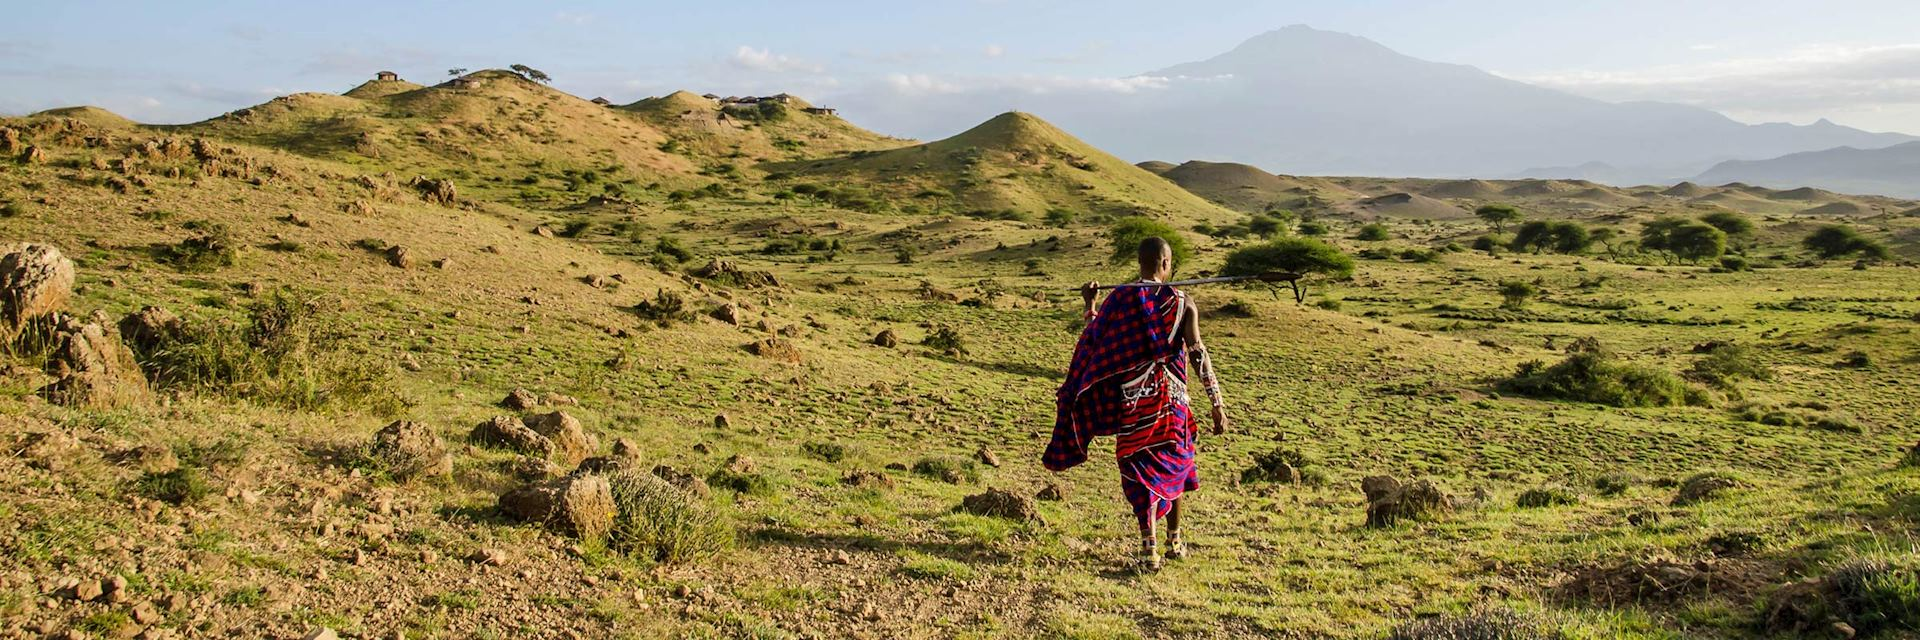 Maasai warrior in the West Kilimanjaro foothills